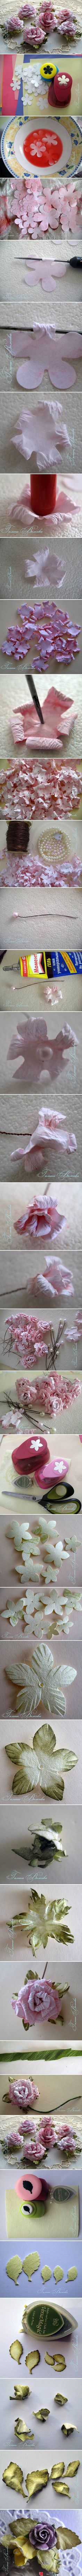 How To Make Paper Rosettes diy crafts how to tutorial paper crafts Paper Rosettes, Paper Flowers Diy, Crepe Paper, Handmade Flowers, Flower Crafts, Diy Paper, Fabric Flowers, Paper Crafts, Diy Crafts